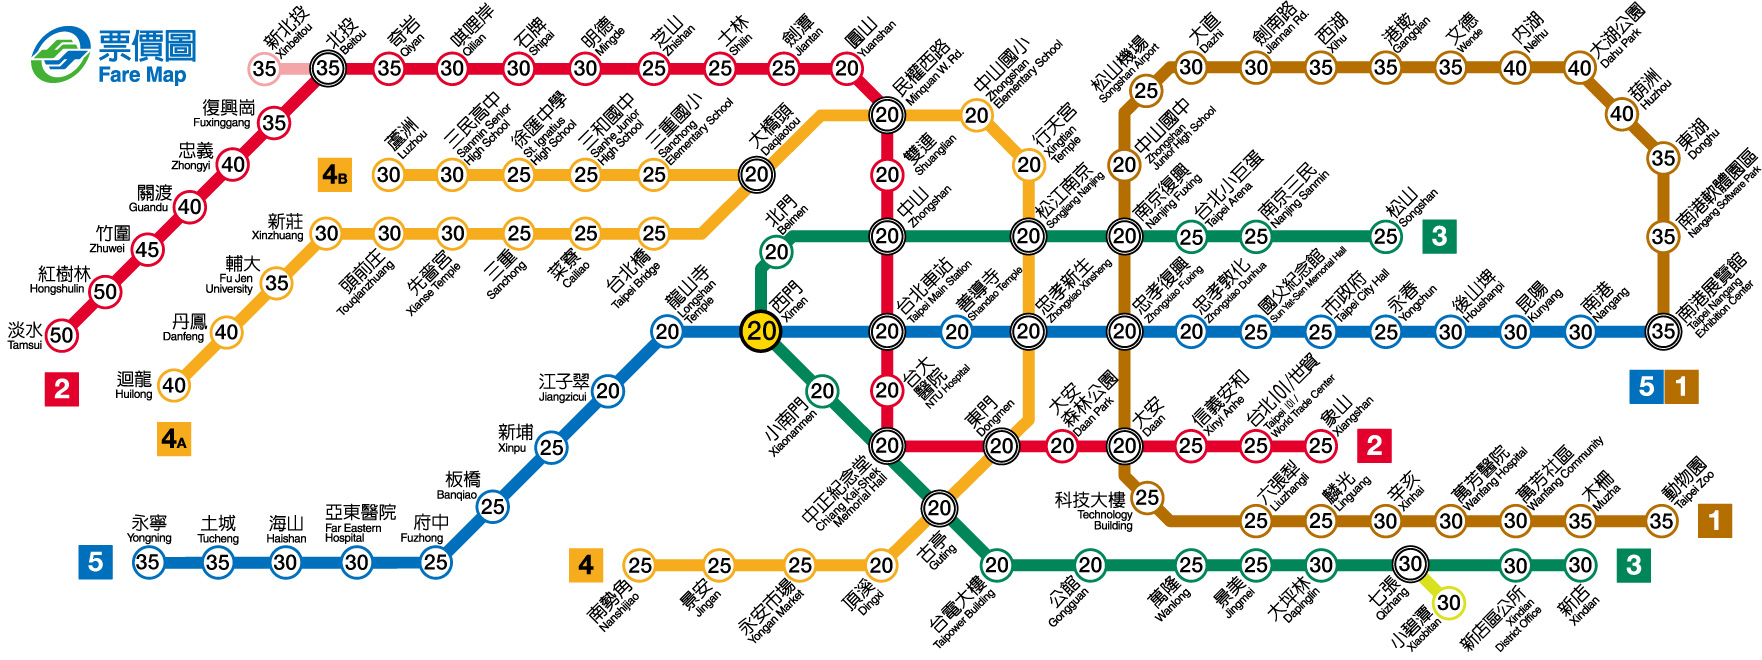 Subway Map Taipei.How To Let Foreigners Buy Single Journey Metro Ticket Much Easier